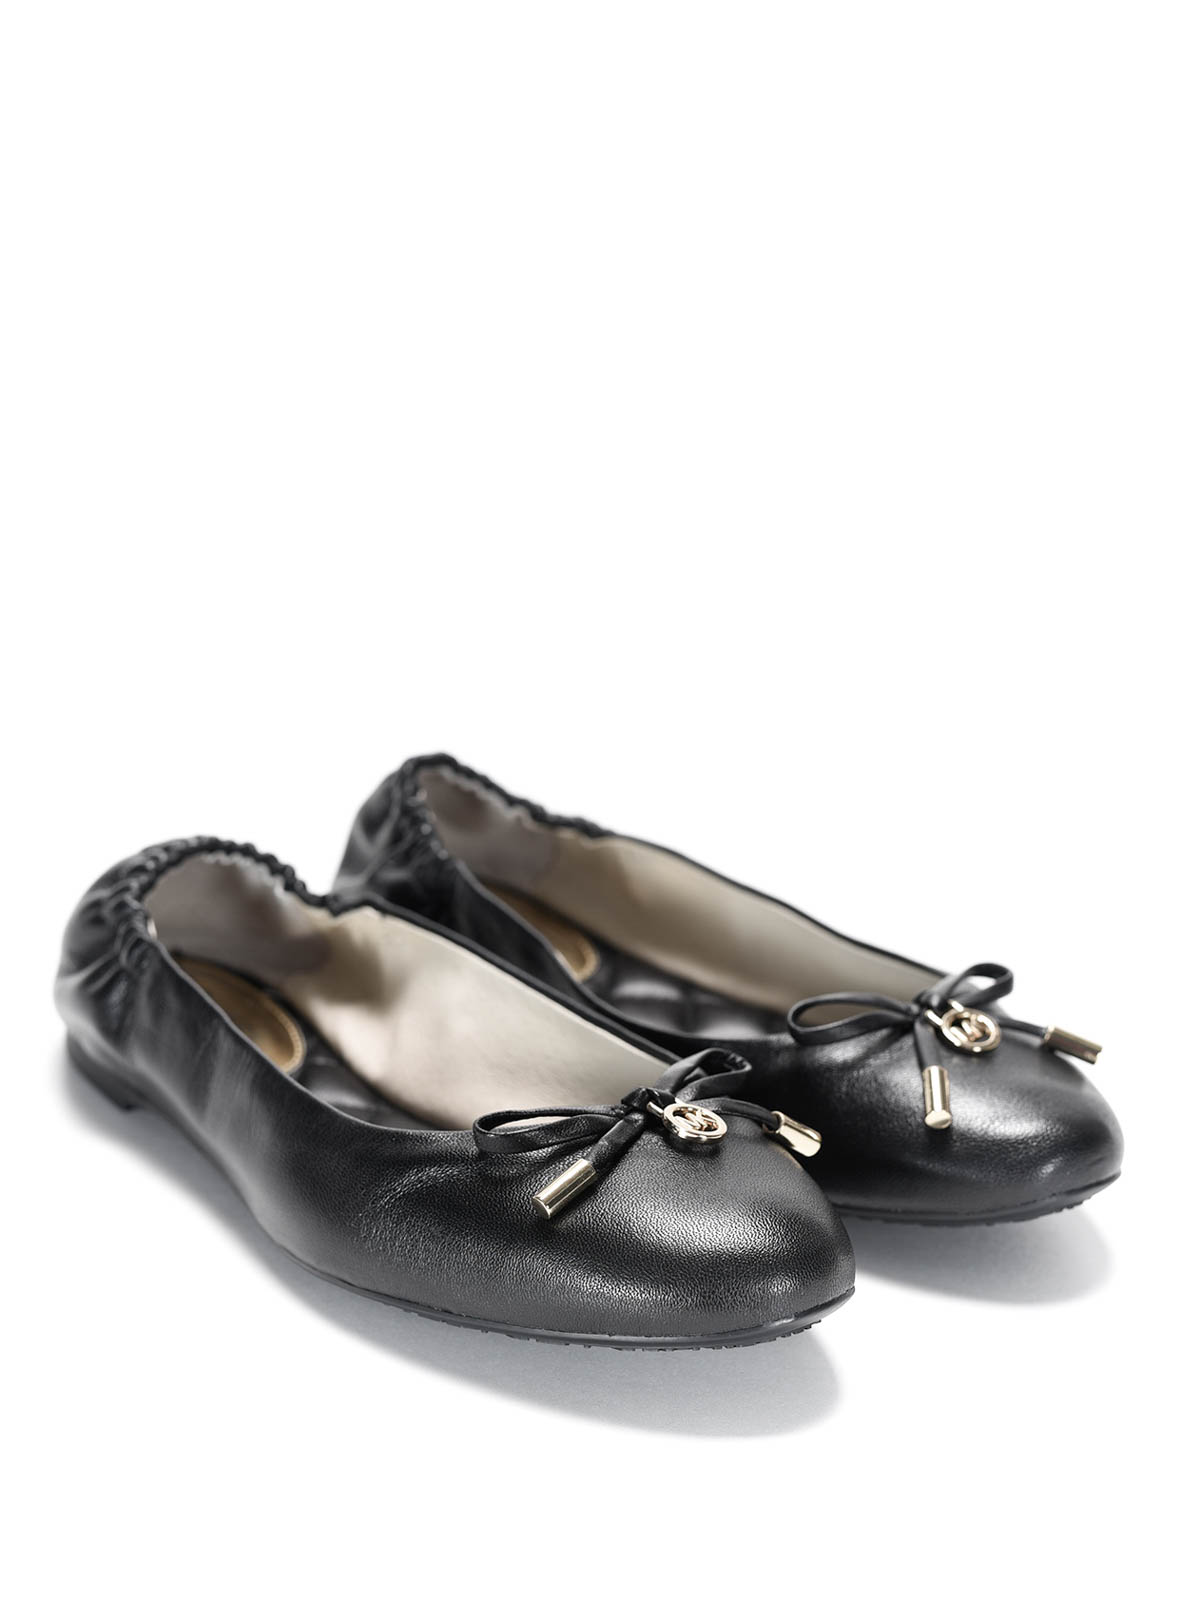 Michael Kors - Melody Leather Flat Shoes